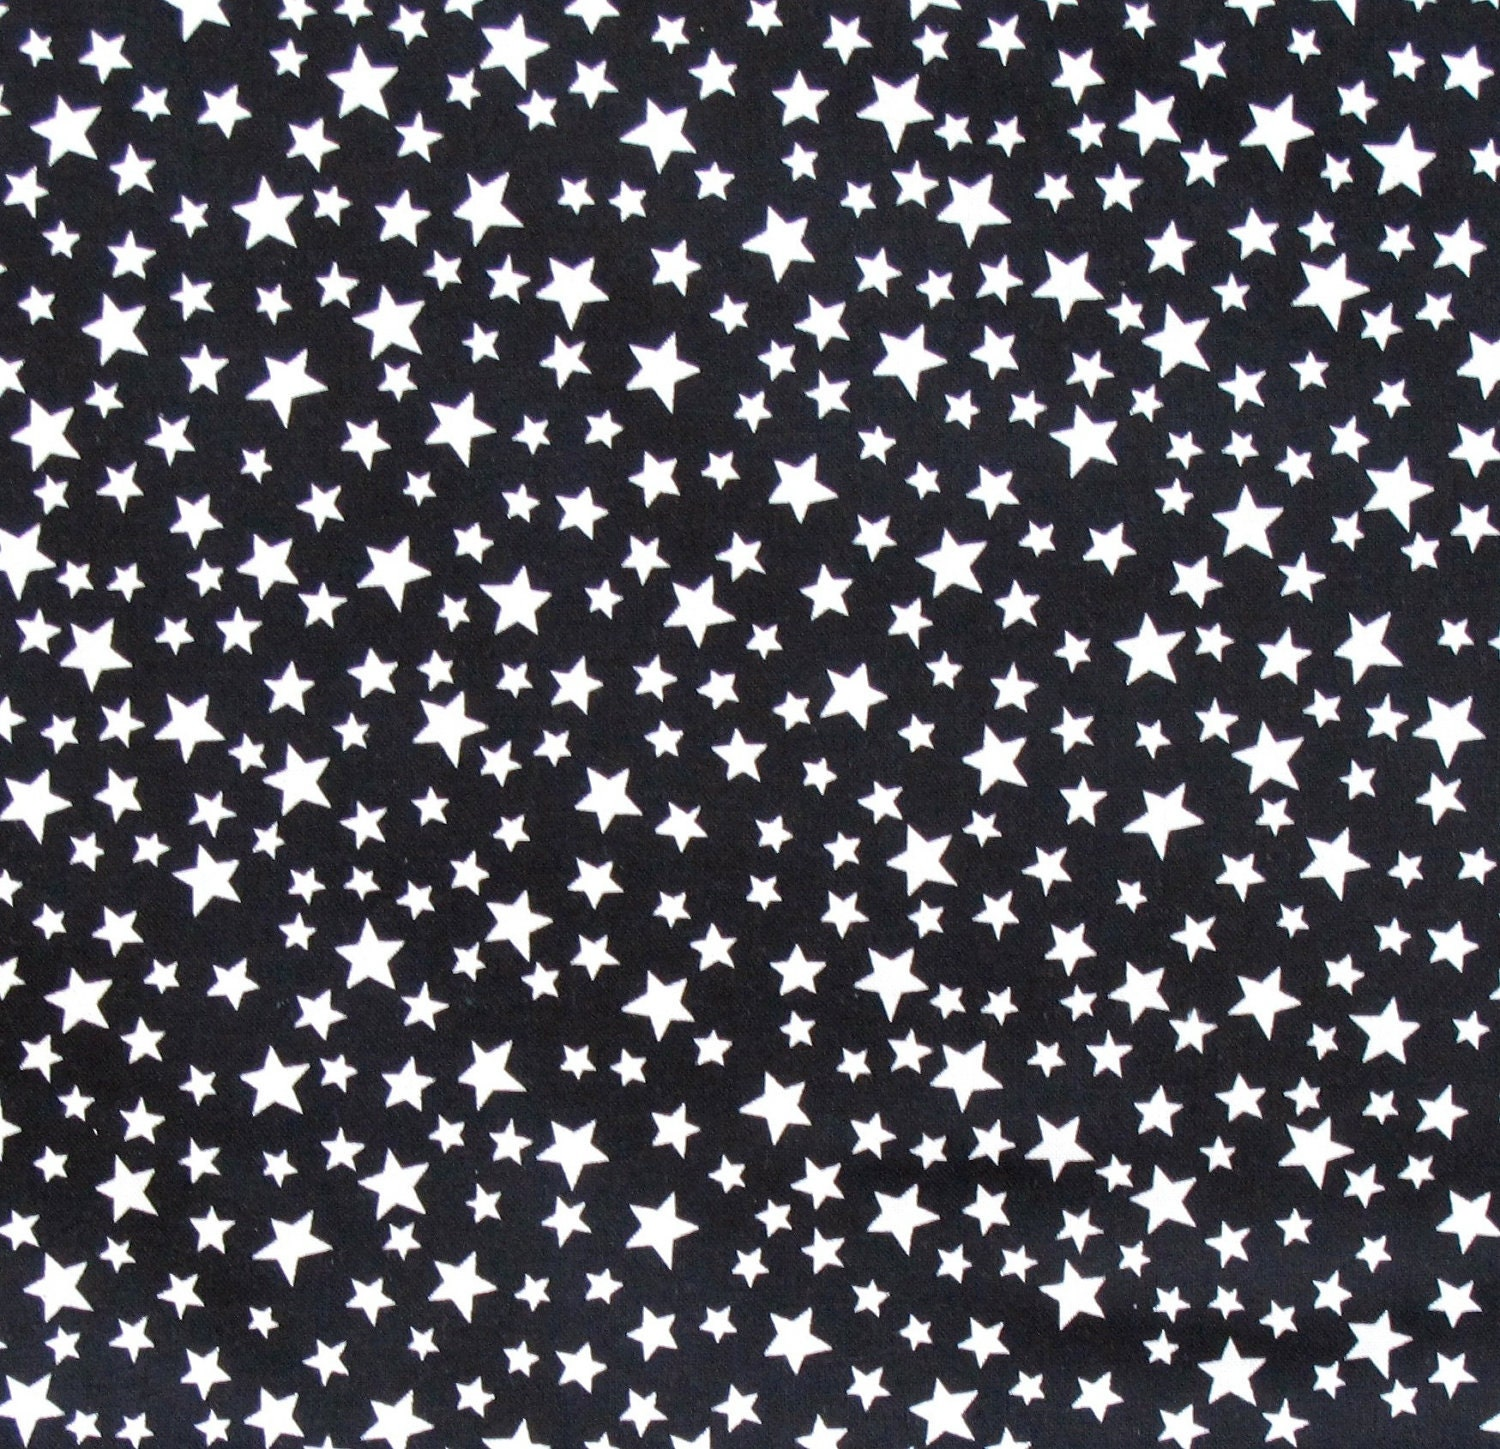 stars background black and white wwwimgkidcom the